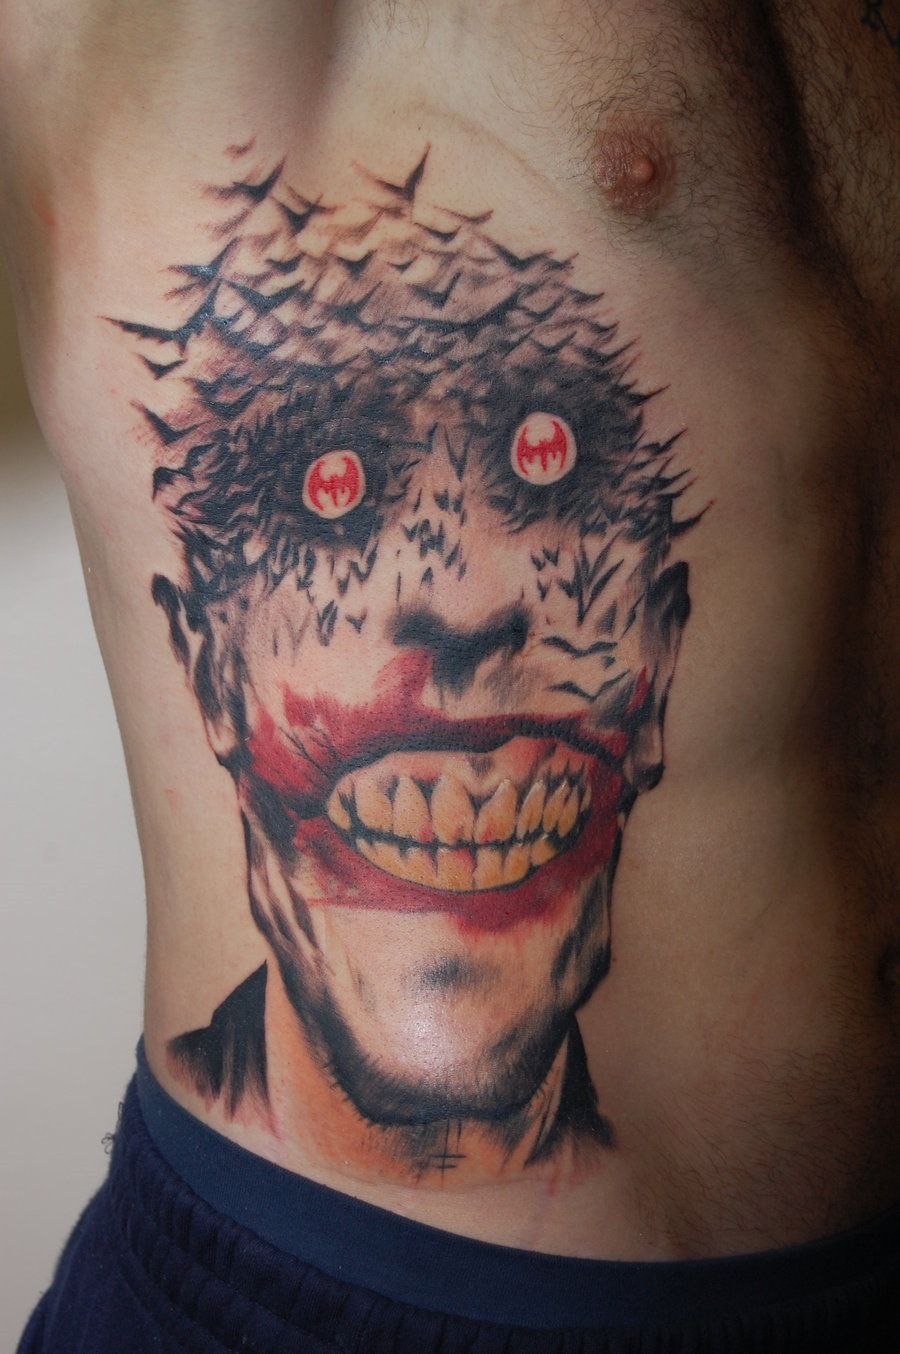 joker tattoo designs pictures - photo #33